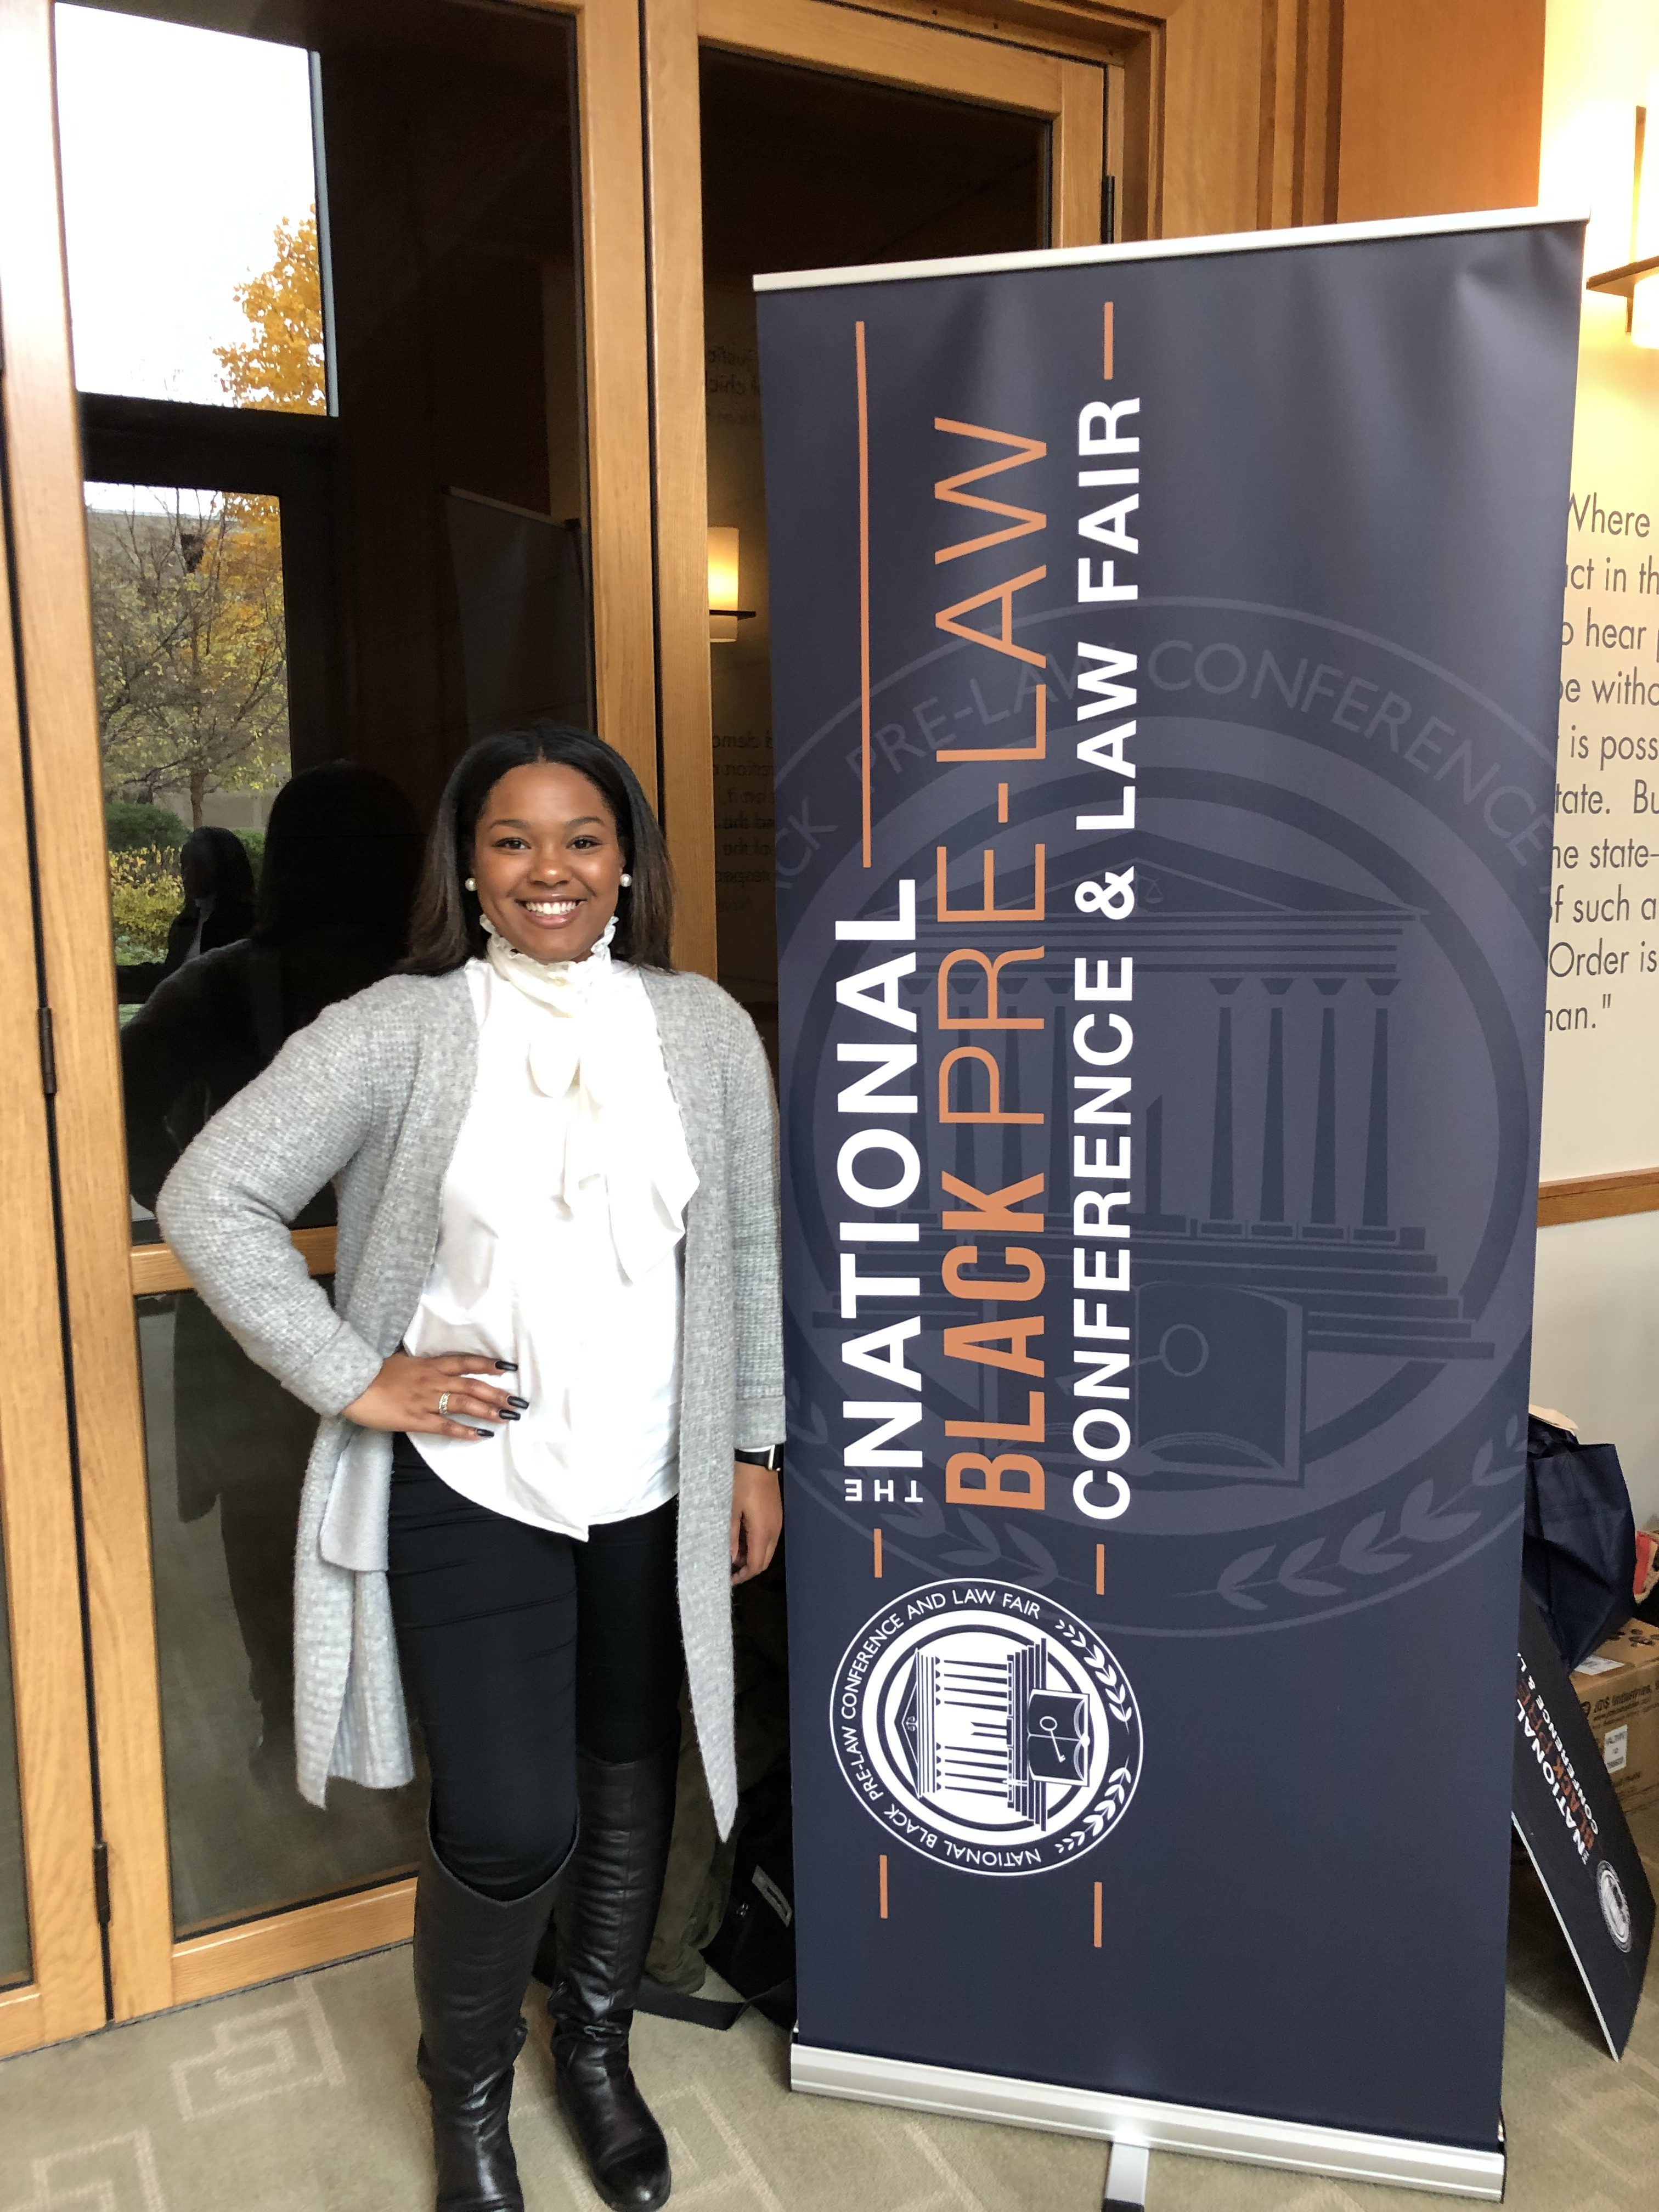 Malasia McClendon in front of a conference sign.